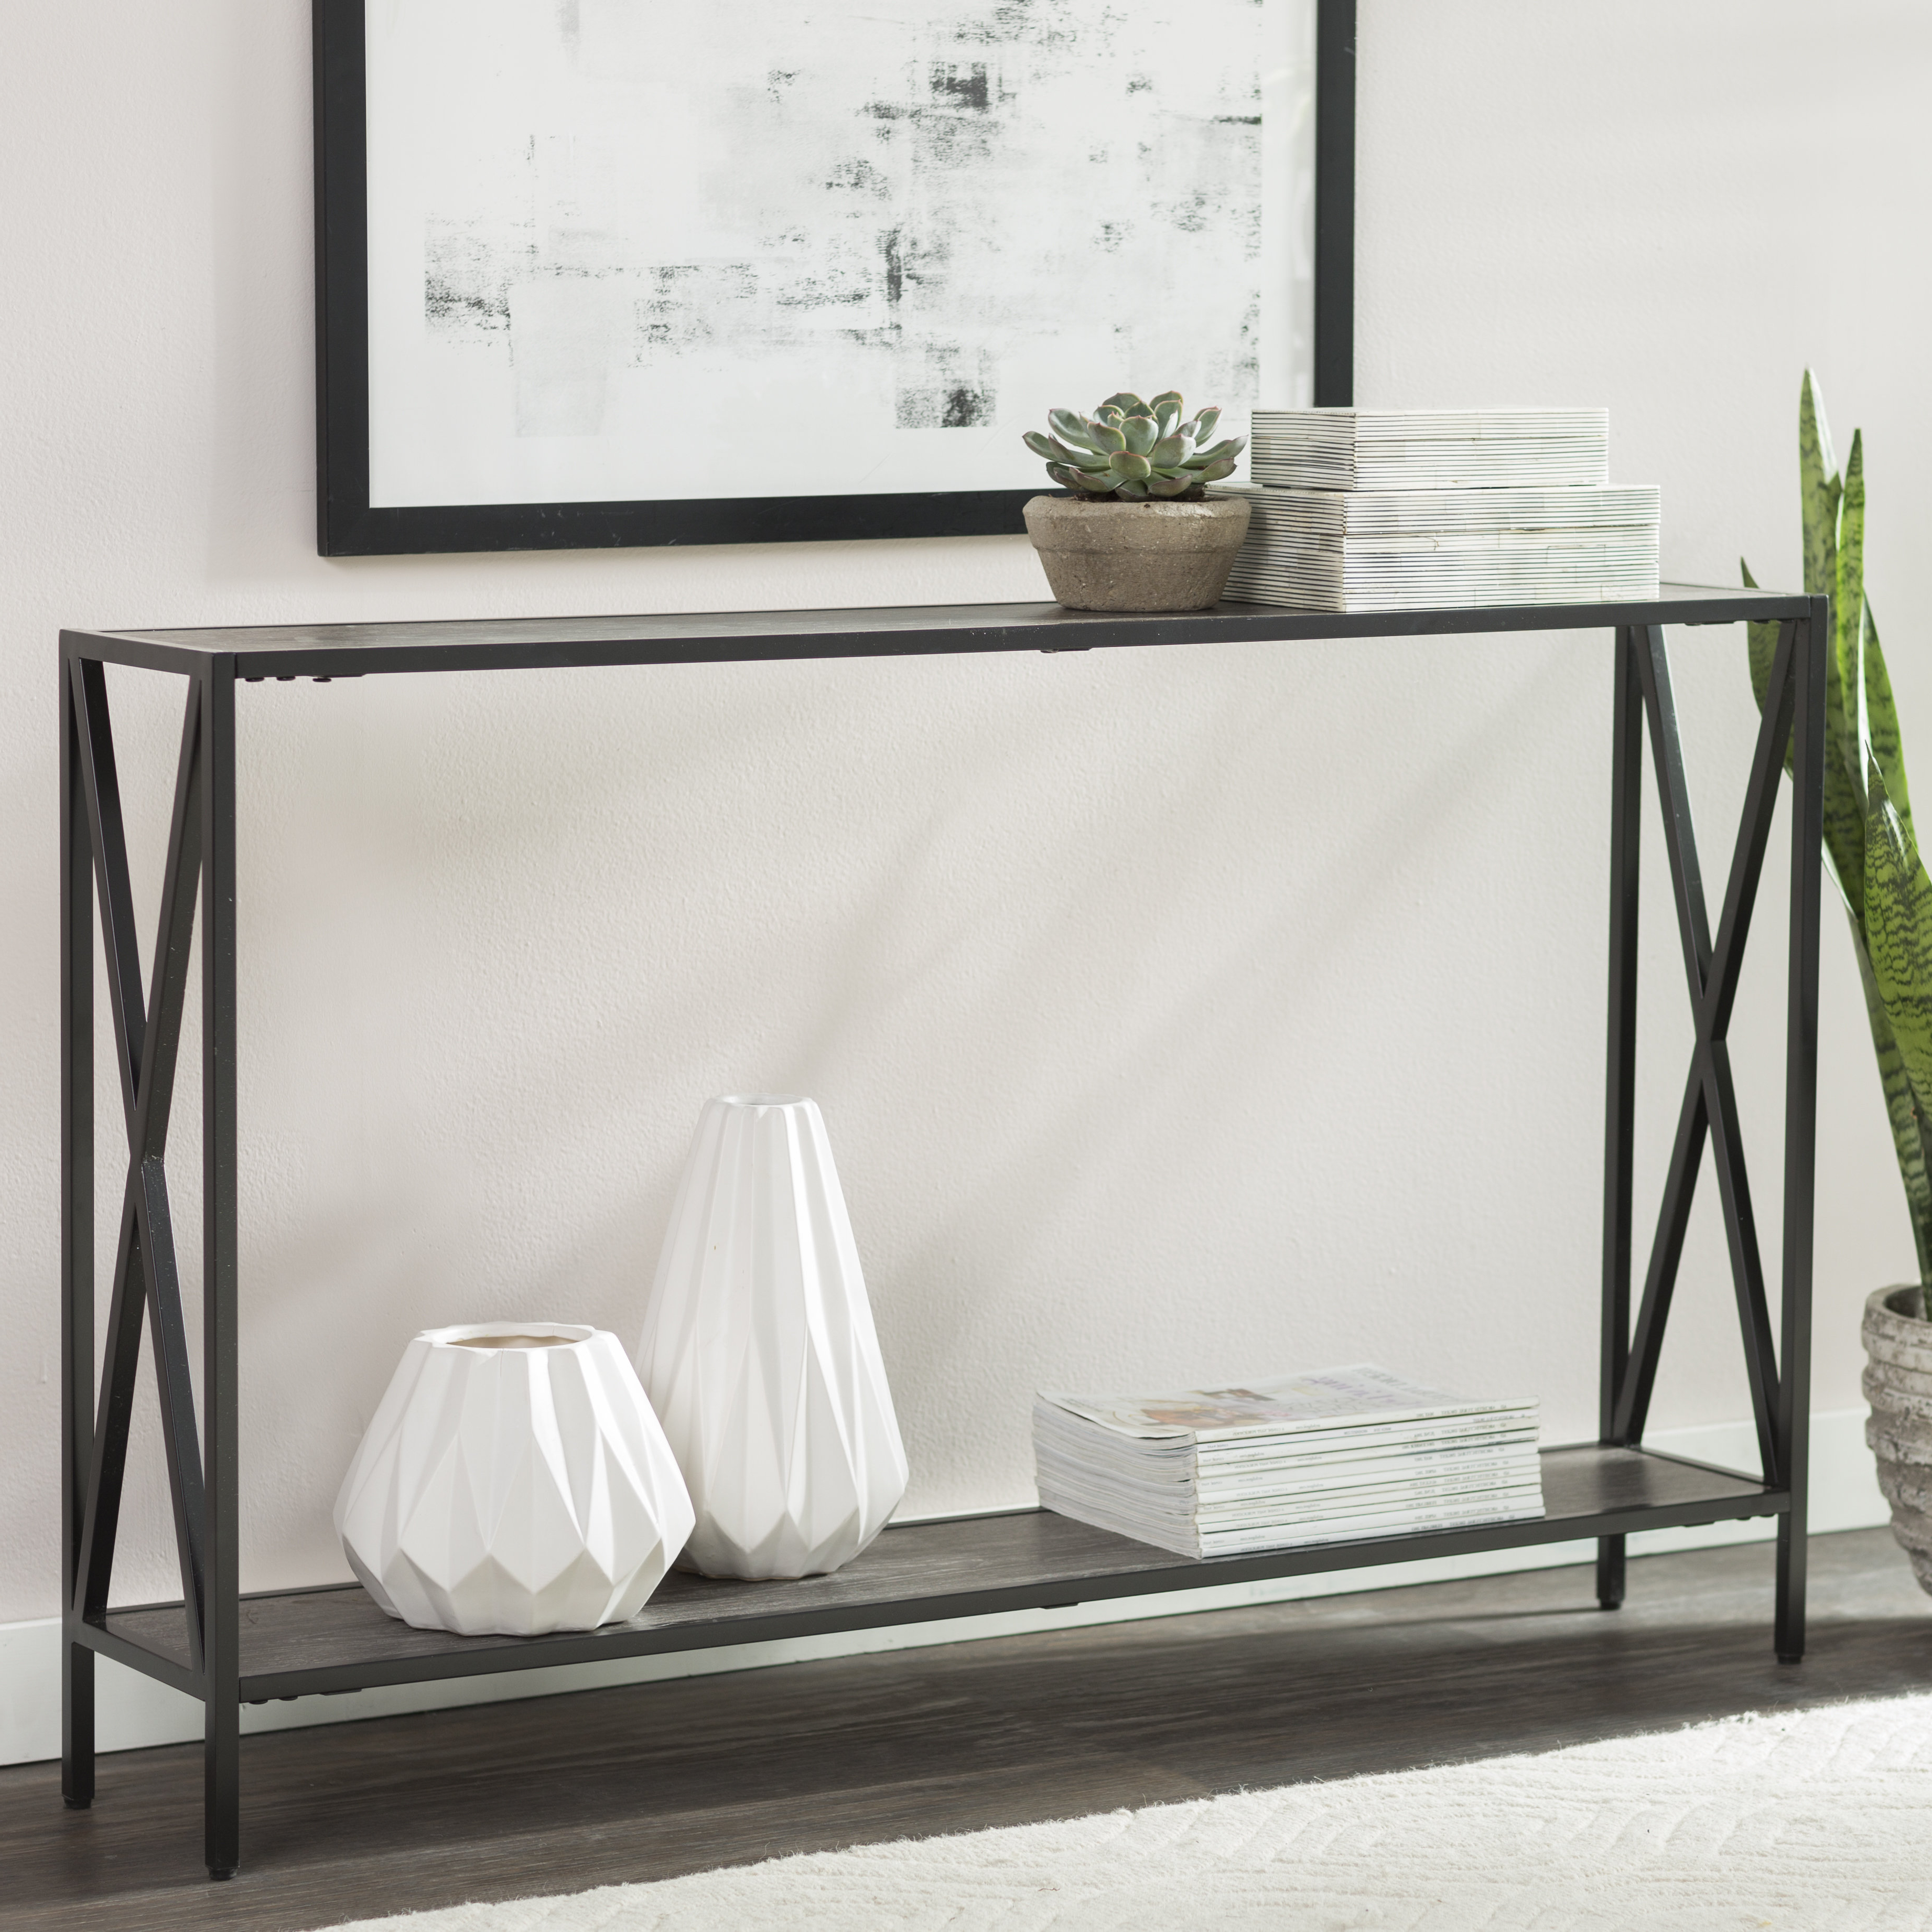 Andover Mills Abbottsmoor Metal Frame Console Table & Reviews | Wayfair With Frame Console Tables (Gallery 2 of 20)